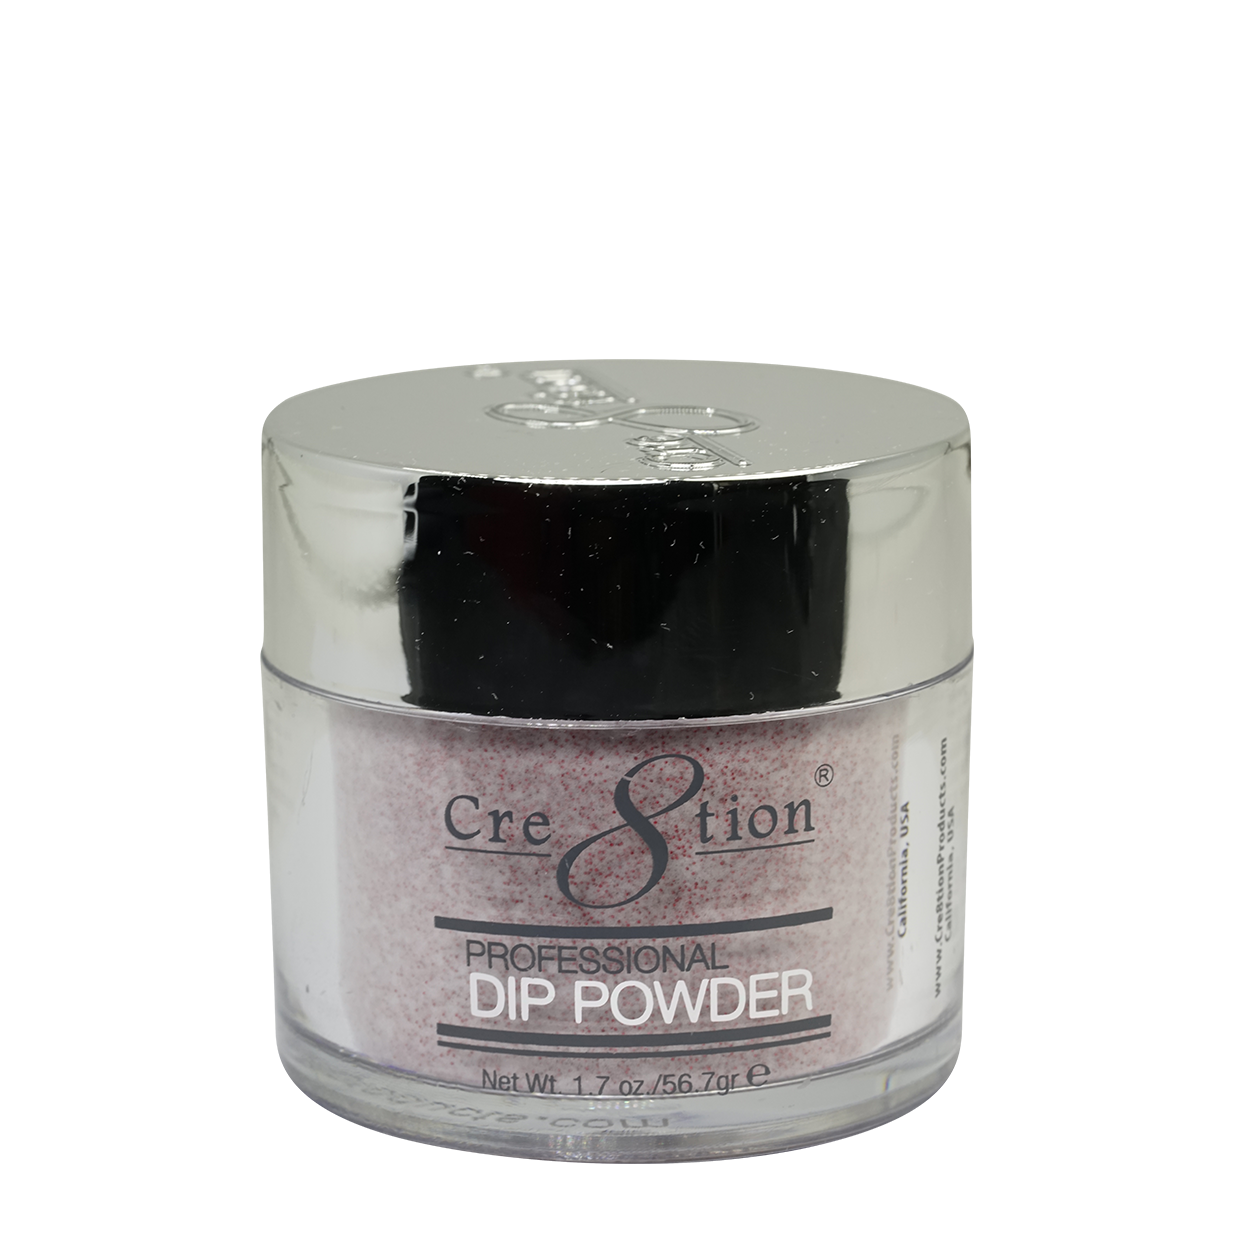 Cre8tion Matching Dip Powder 1.7oz 195 MRS SANTA CLAUS